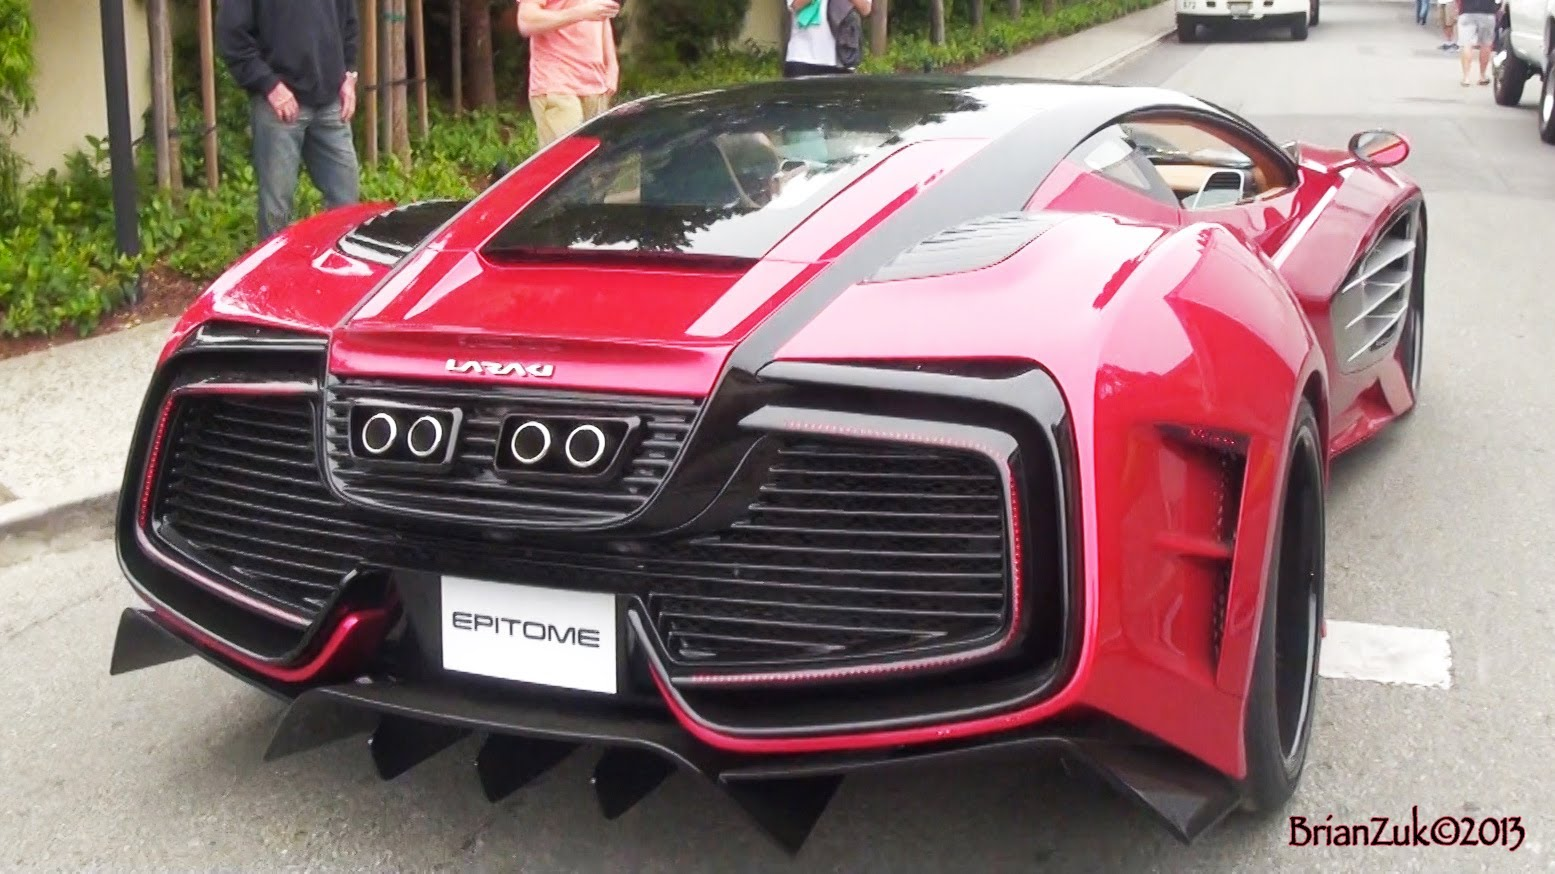 Intimidating 1200hp Laraki Epitome Roars Through The Pebble Beach Bmw I8 Concours D 8217 Elegance Edition Pictures Photo Gallery 2018